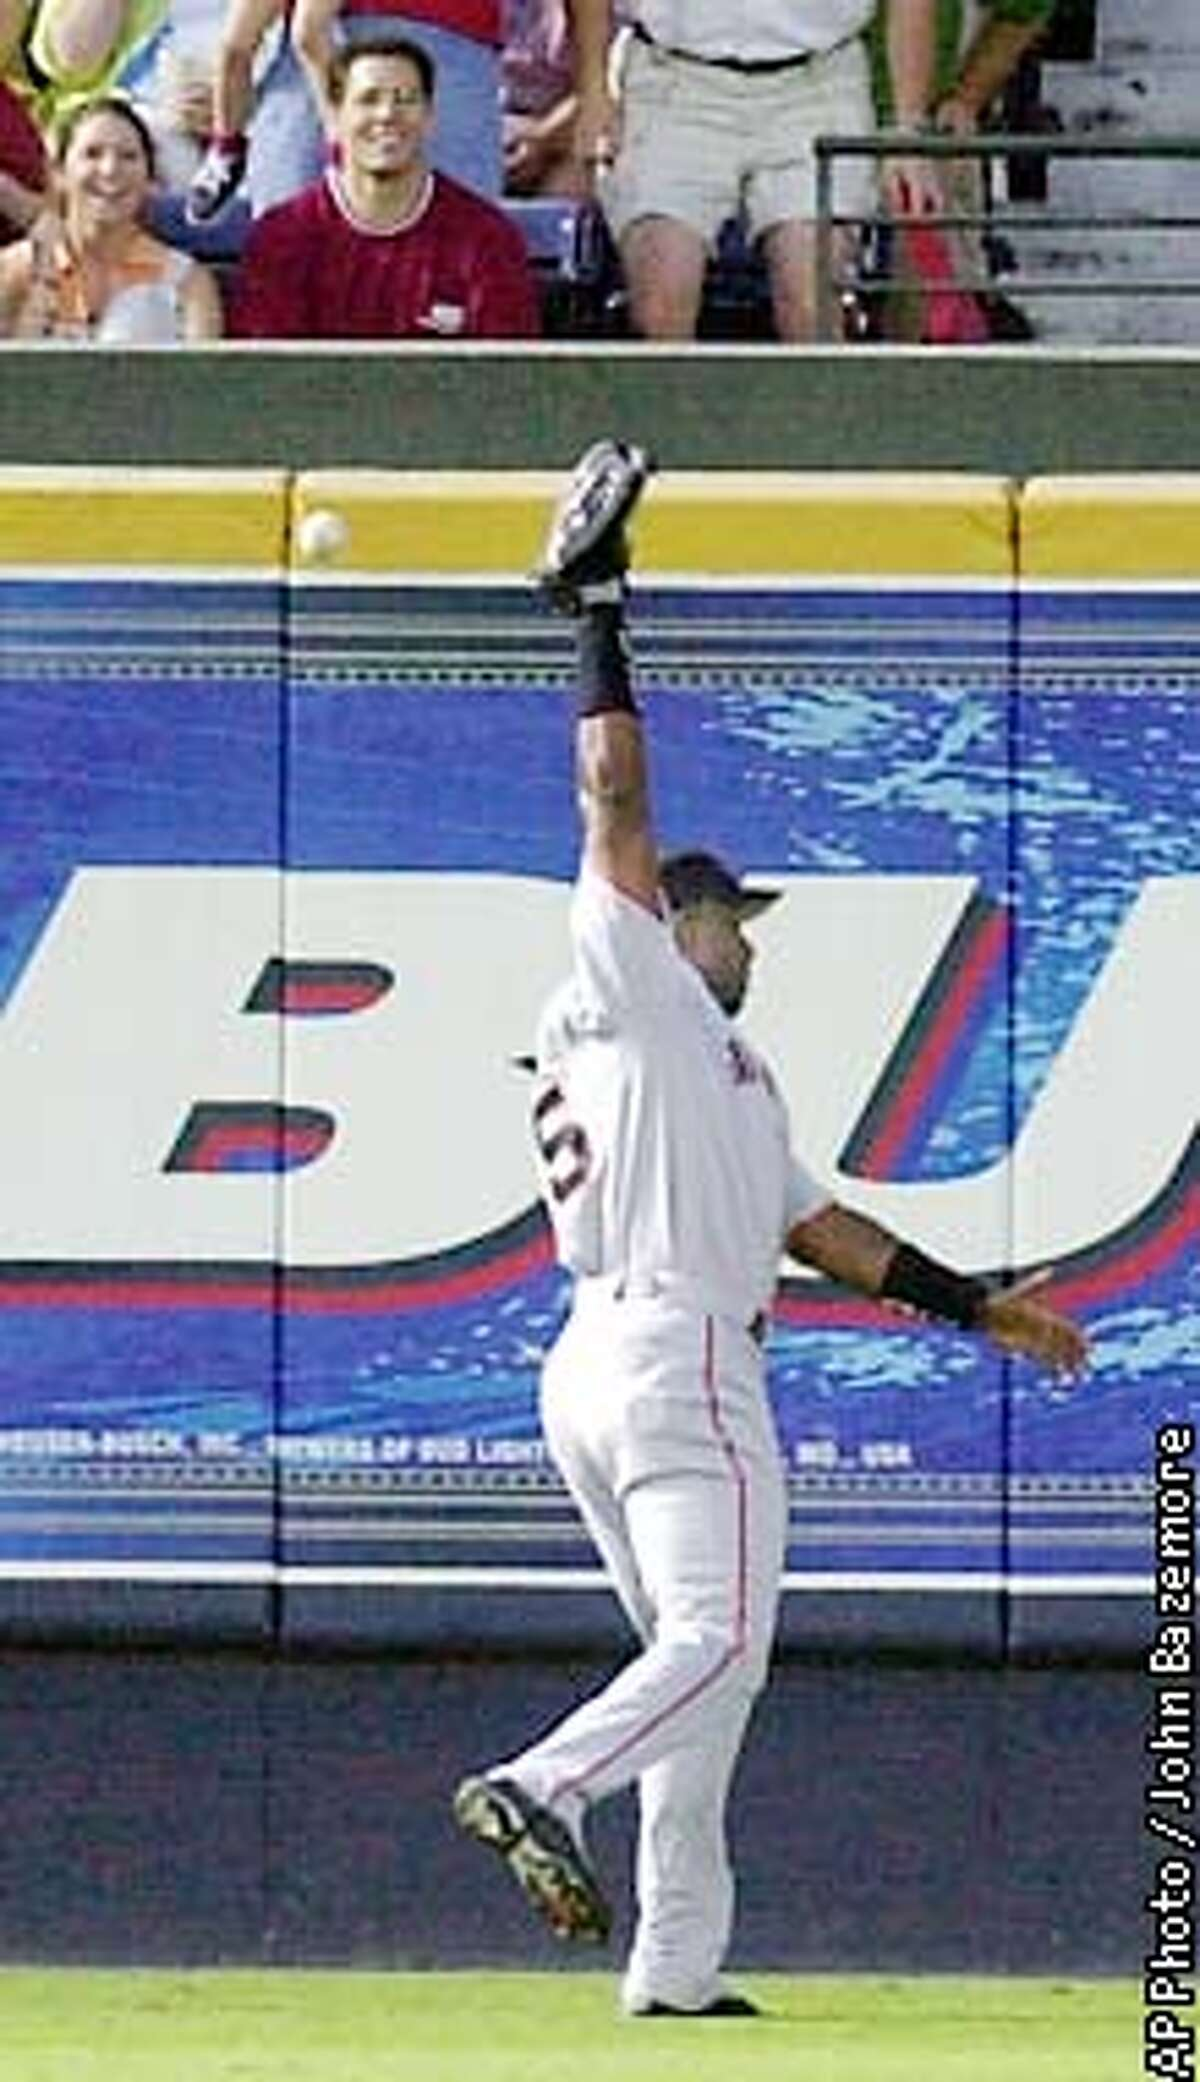 San Francisco Giants left fielder Barry Bonds is unbale to make the catch in a hit by Atlanta Braves' Marcus Giles during the second inning in Atlanta Thursday, Aug. 15, 2002. (AP Photo/John Bazemore)